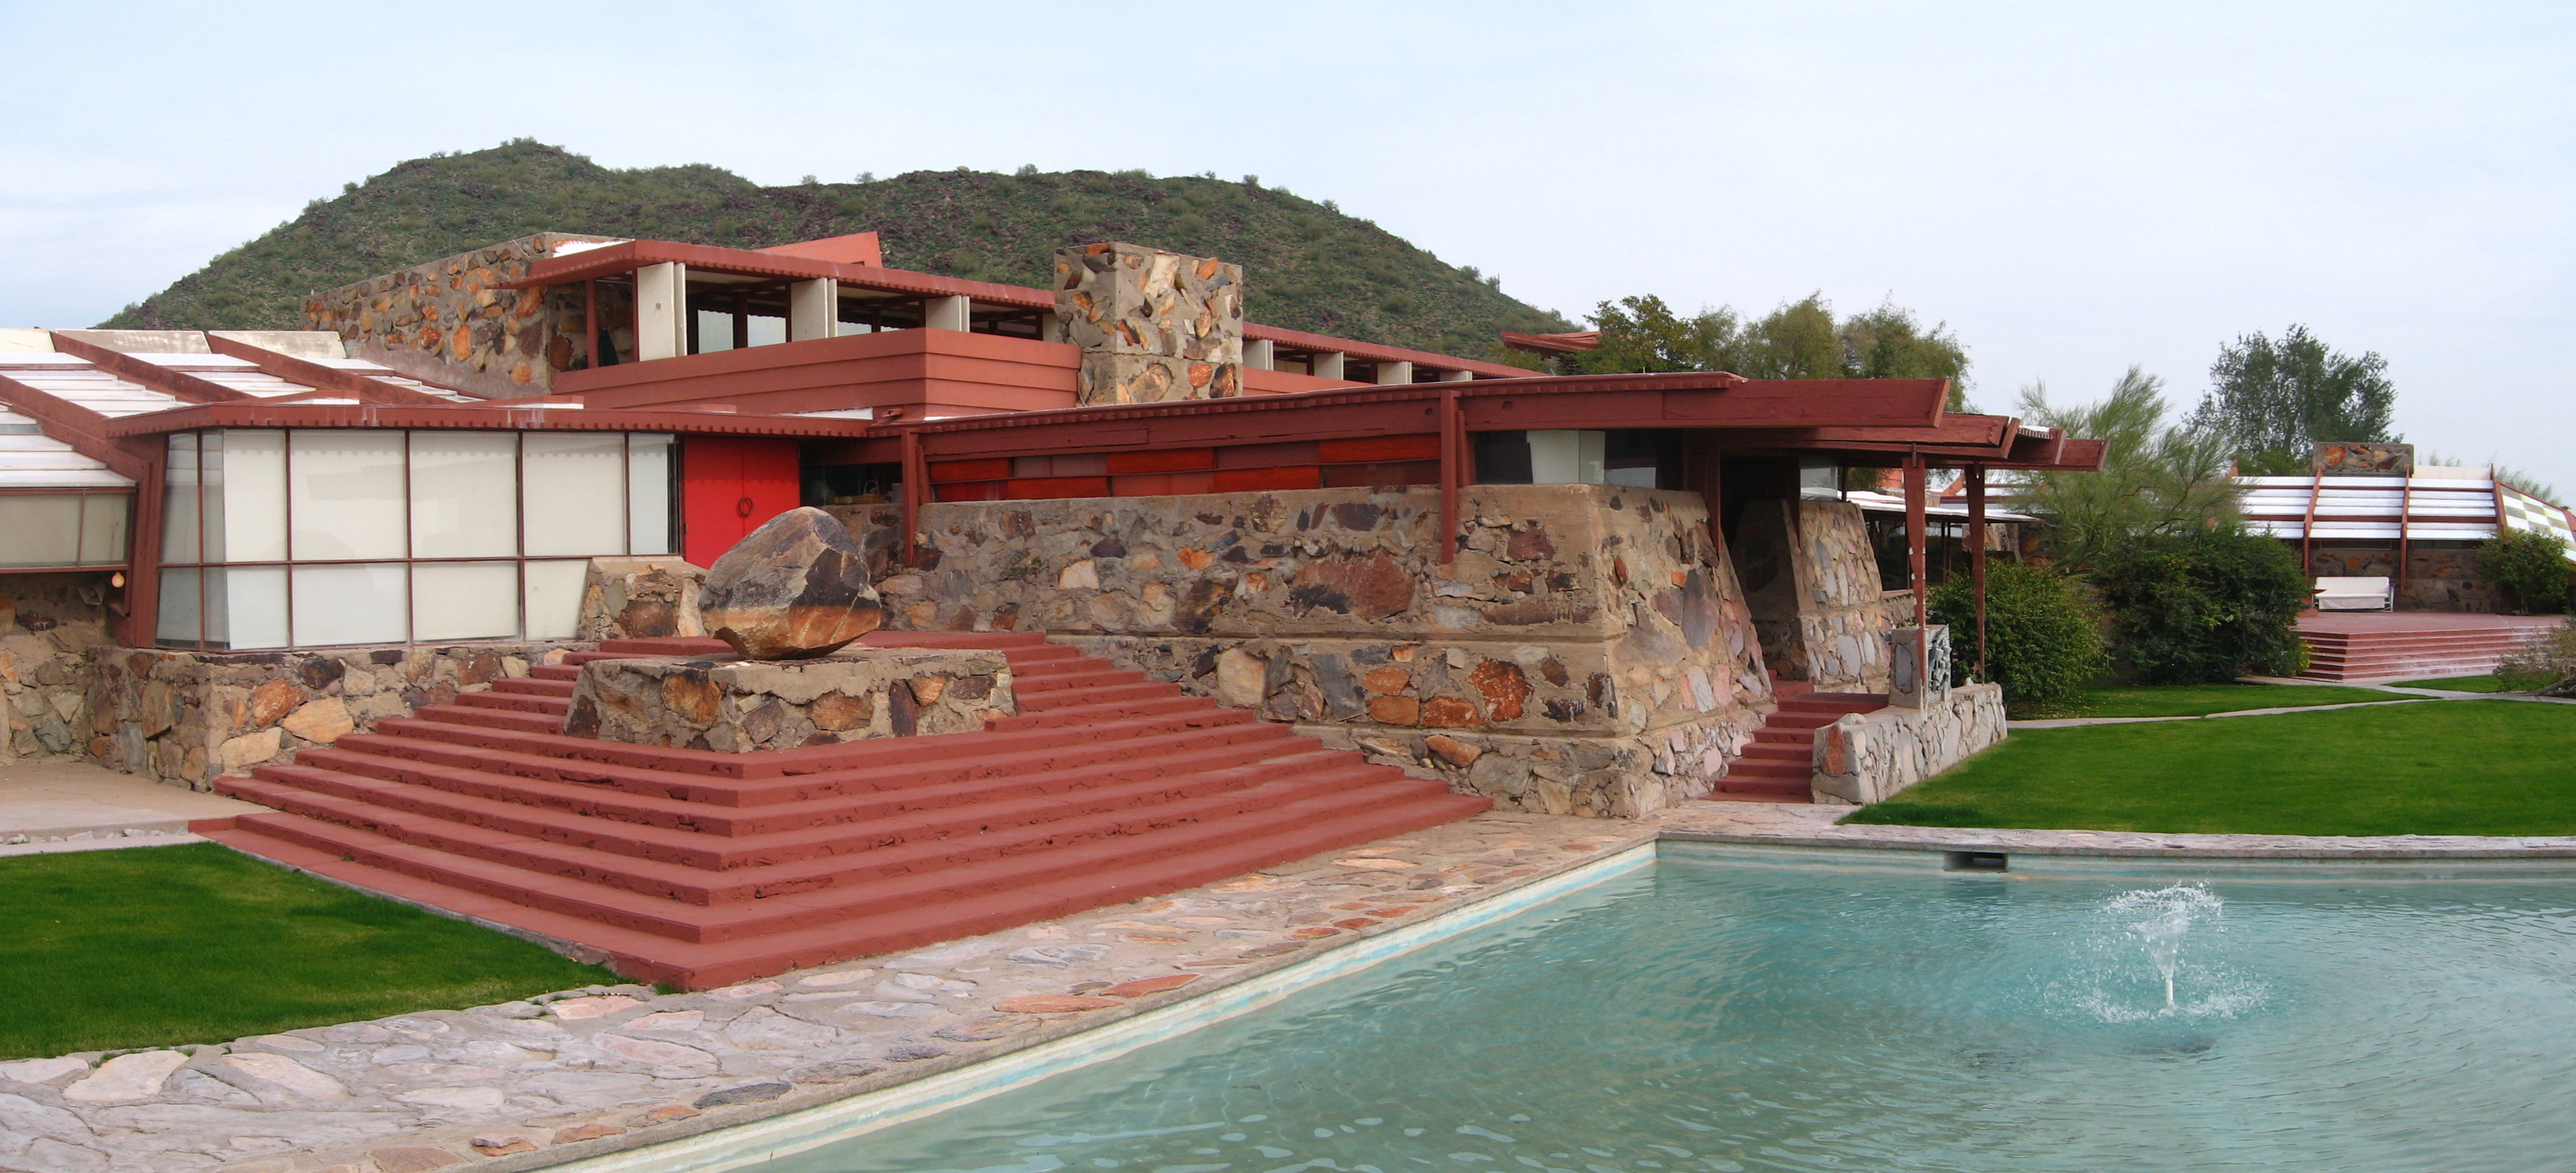 10best itinerary scottsdale for frank lloyd wright fans - Frank lloyd wright architecture ...